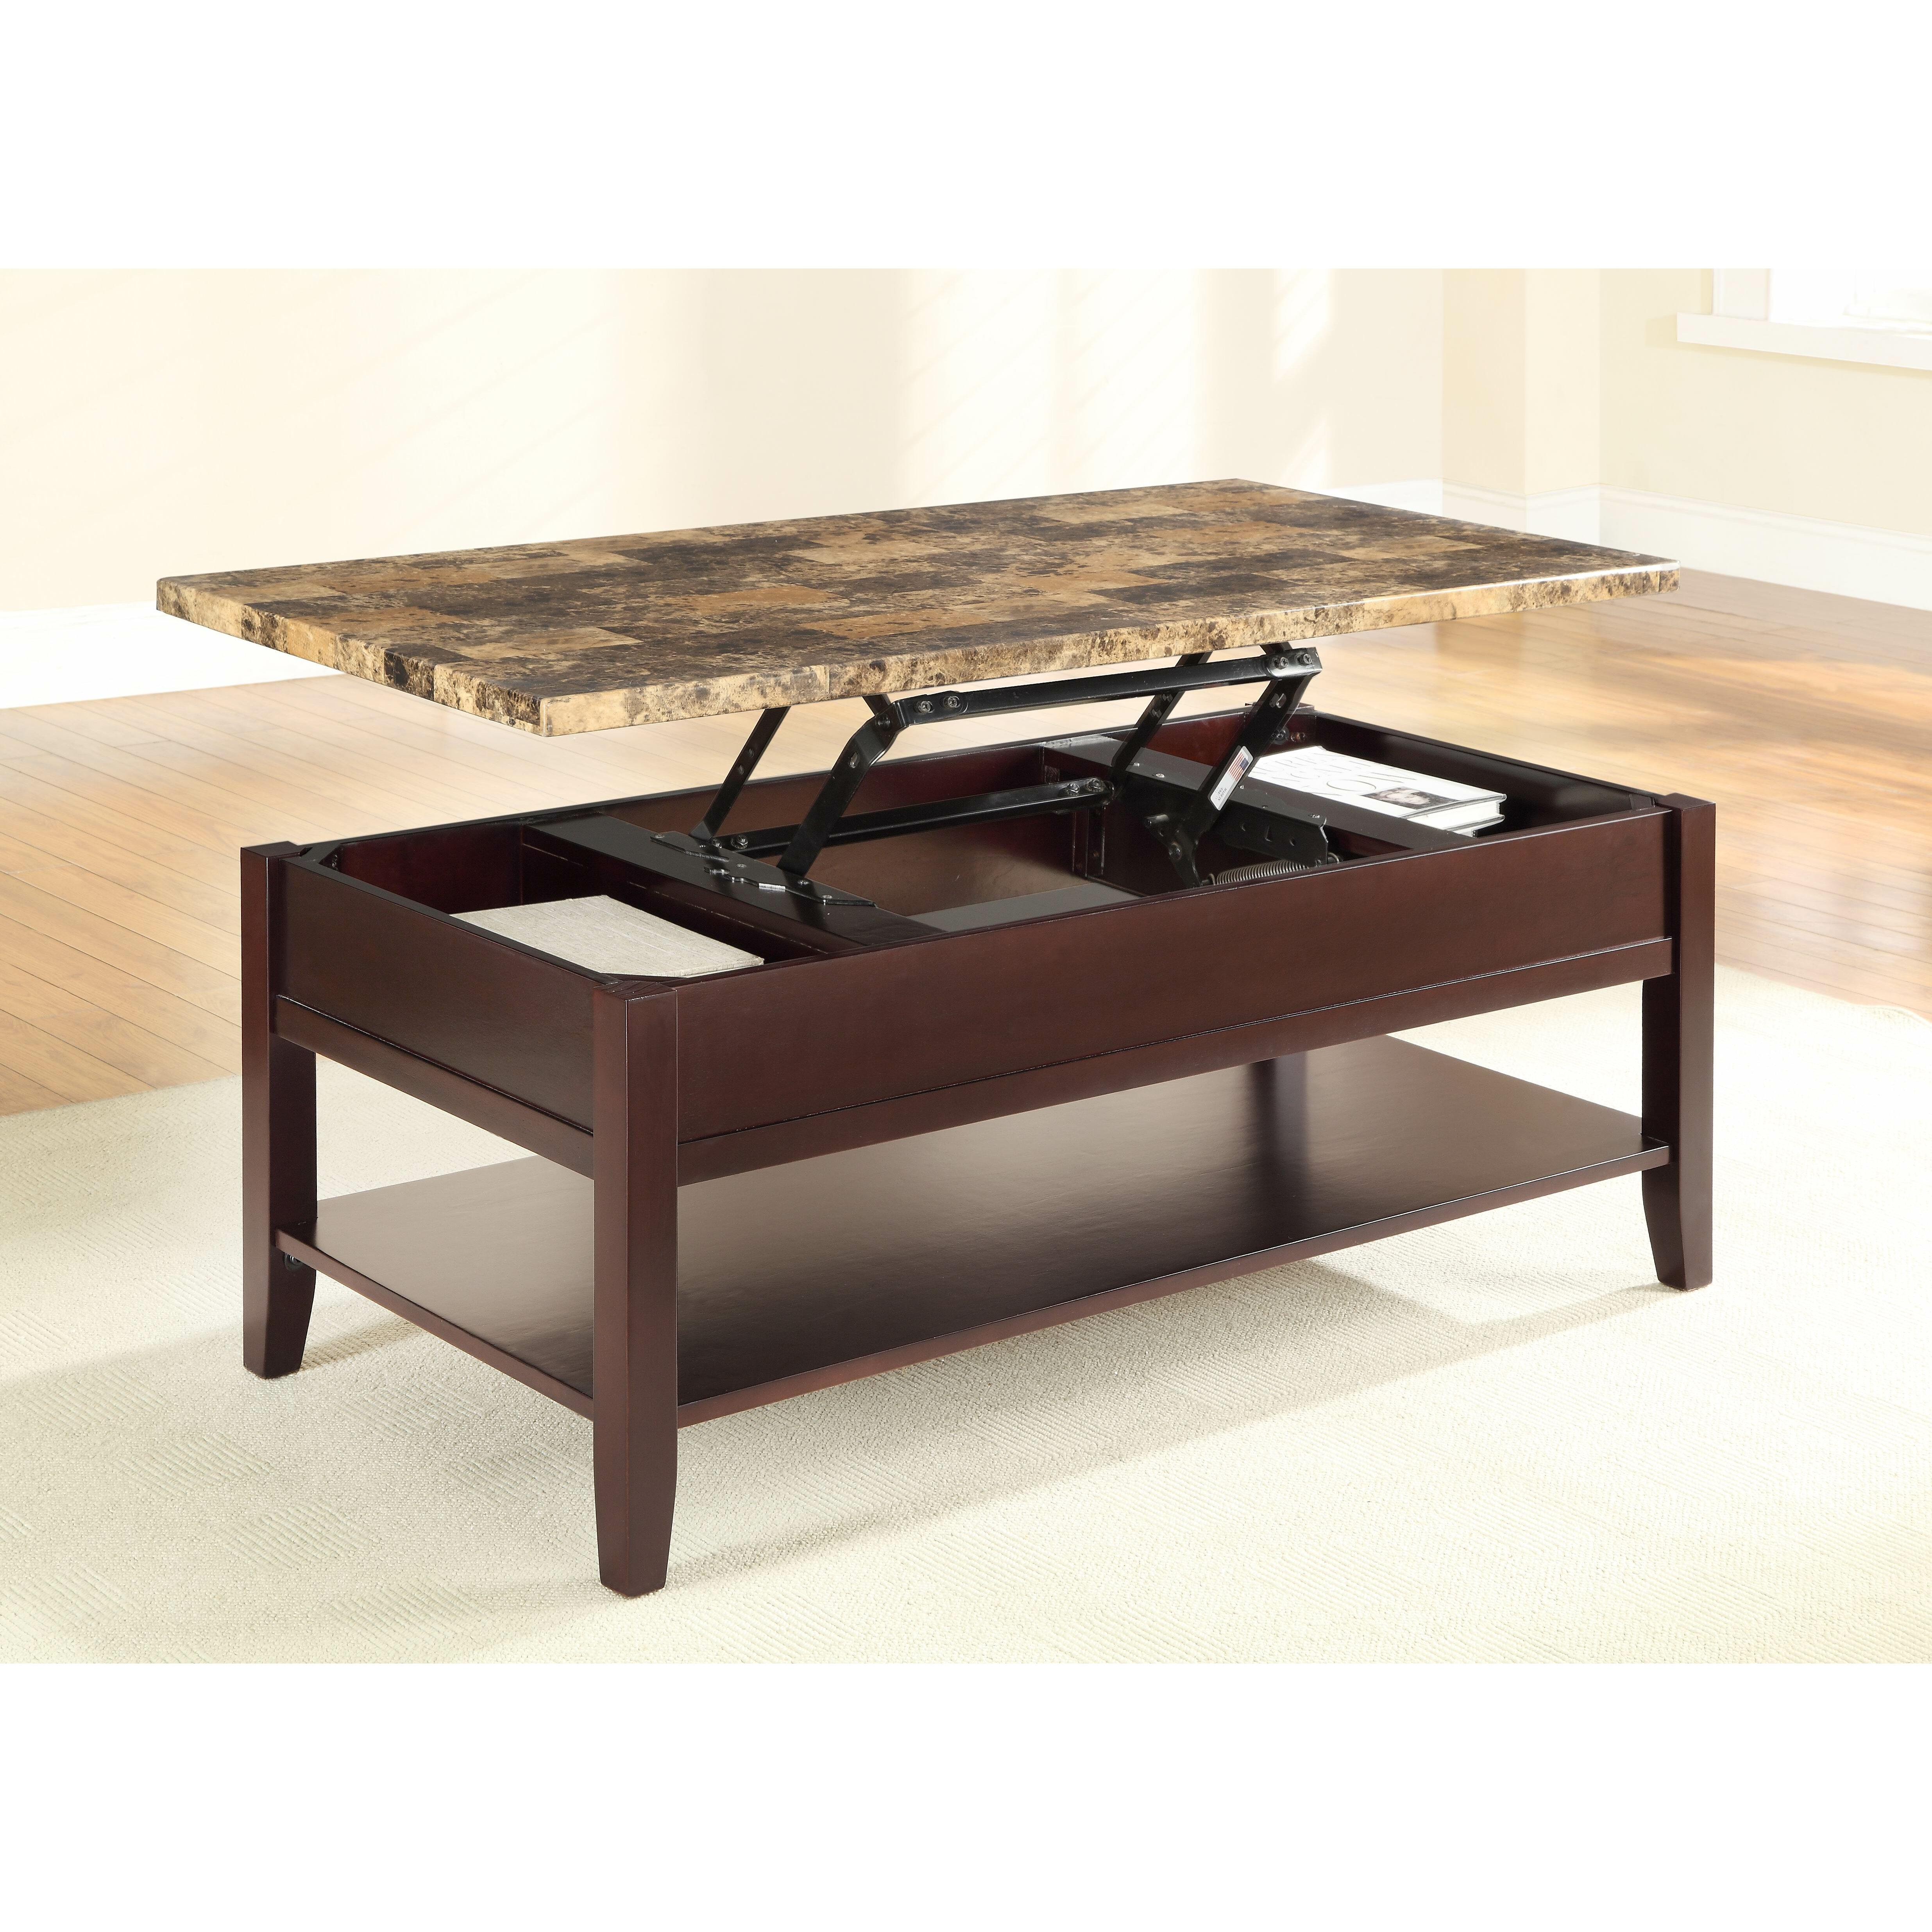 Woodbridge Home Designs Furniture Review Orton Coffee Table With Lift Top Wayfair Ca